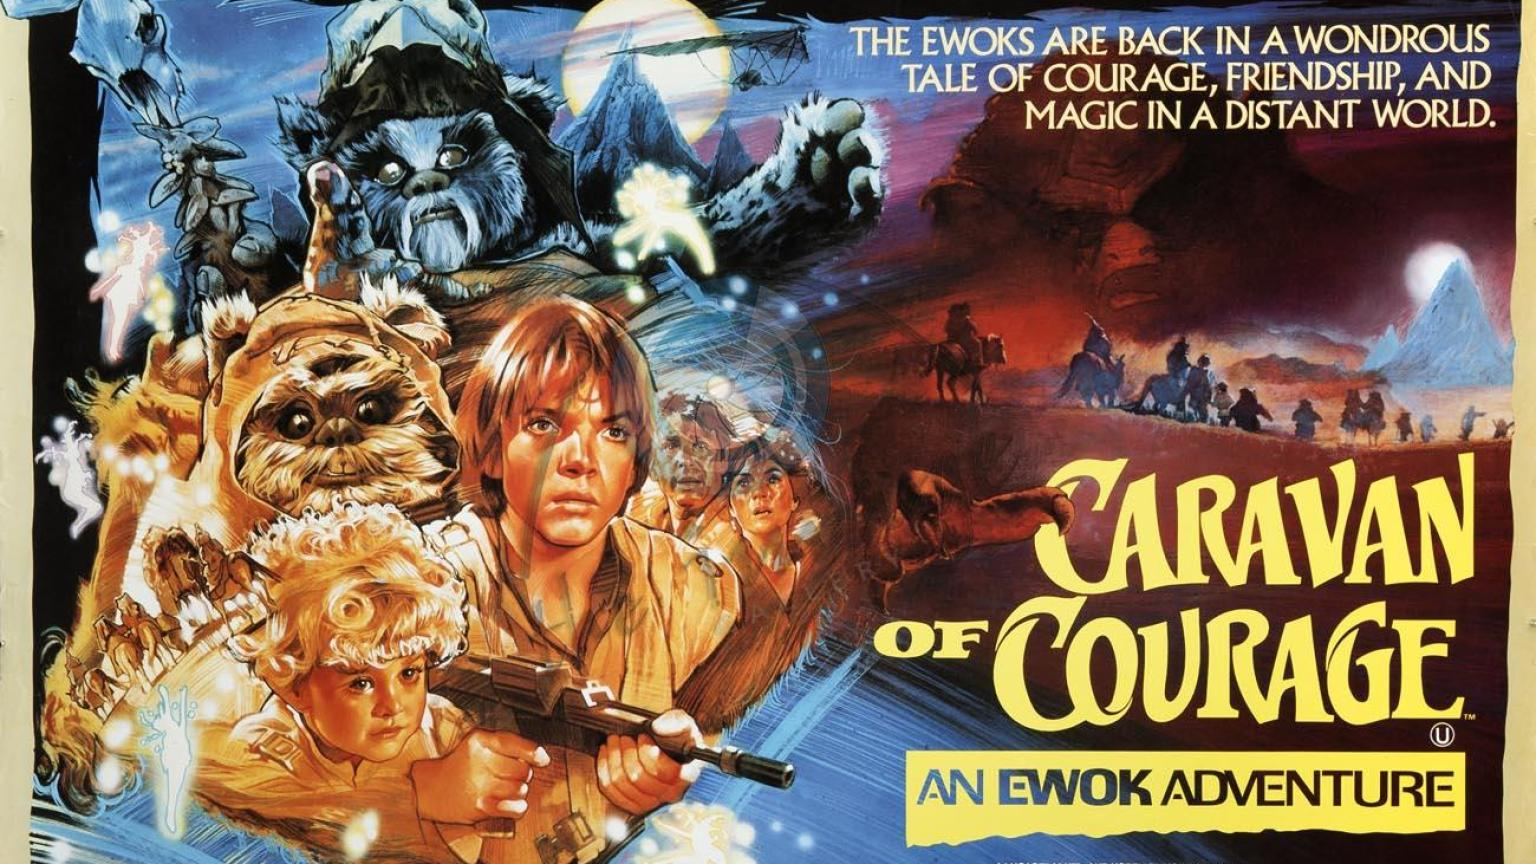 caravan of courage an ewok adventure poster